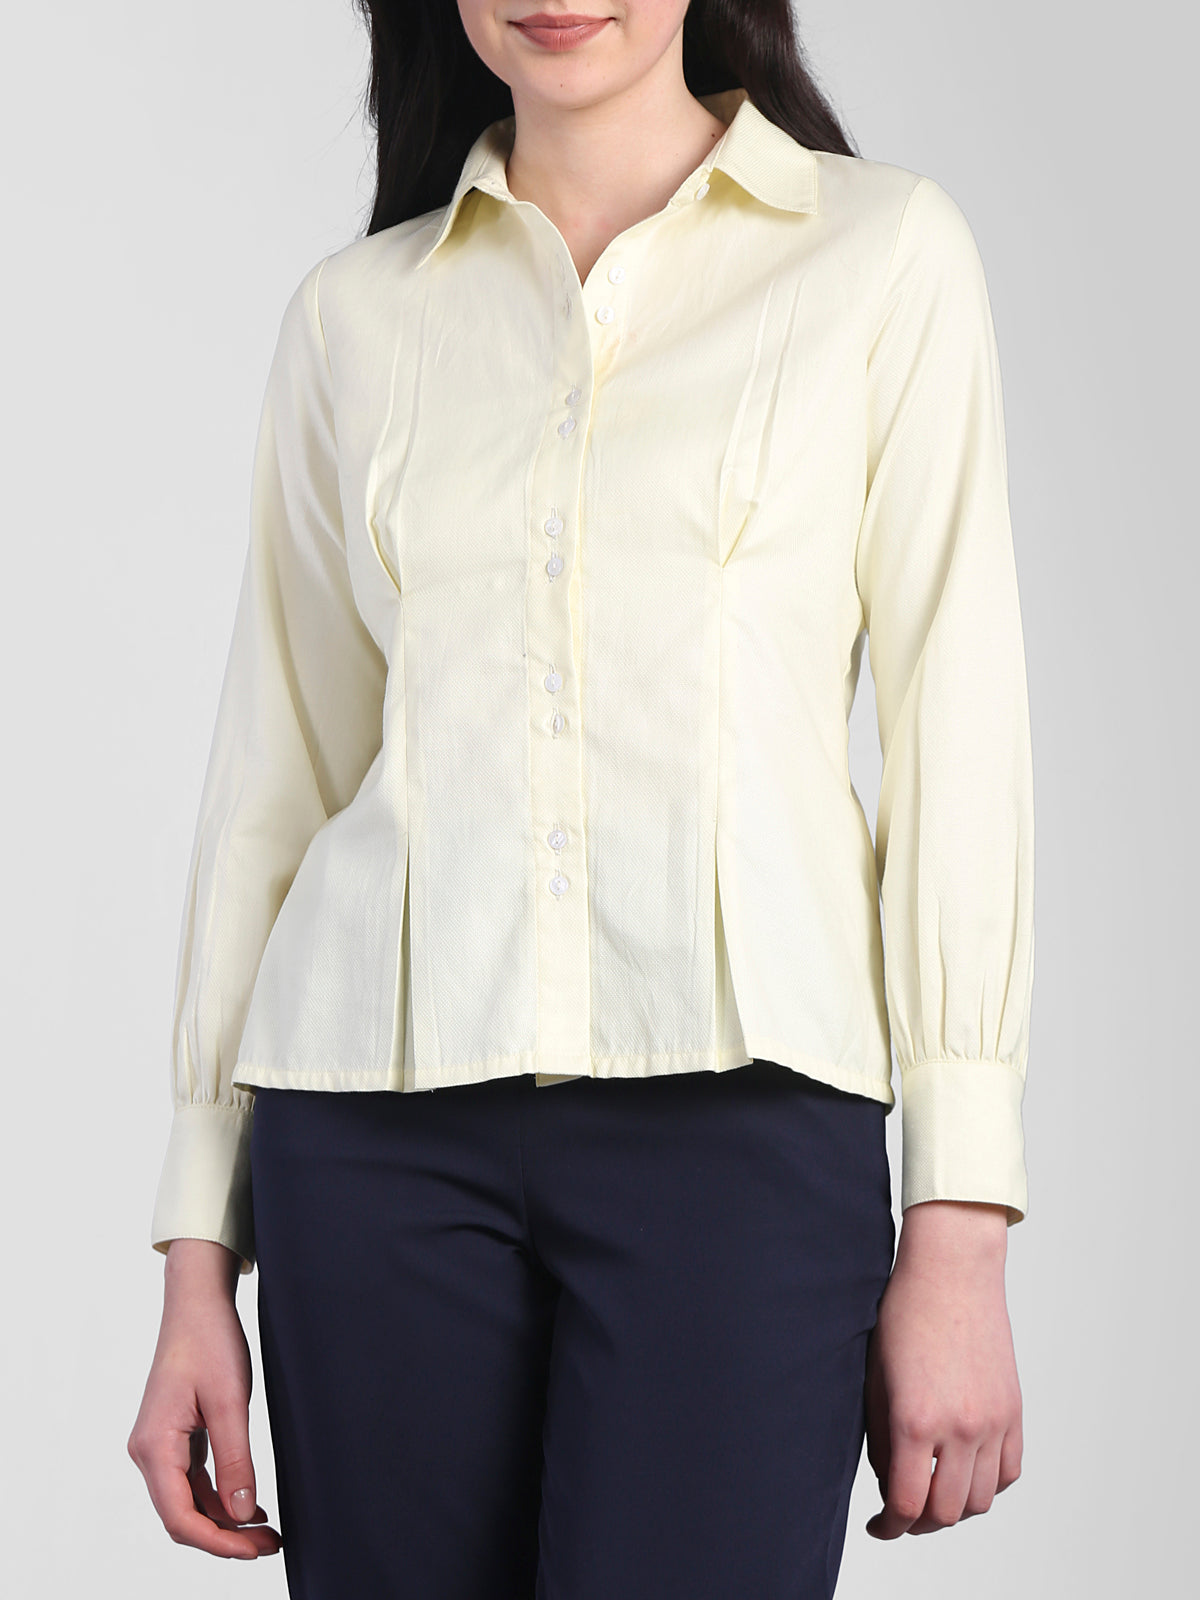 Collared Shirt With Gather Details - Yellow